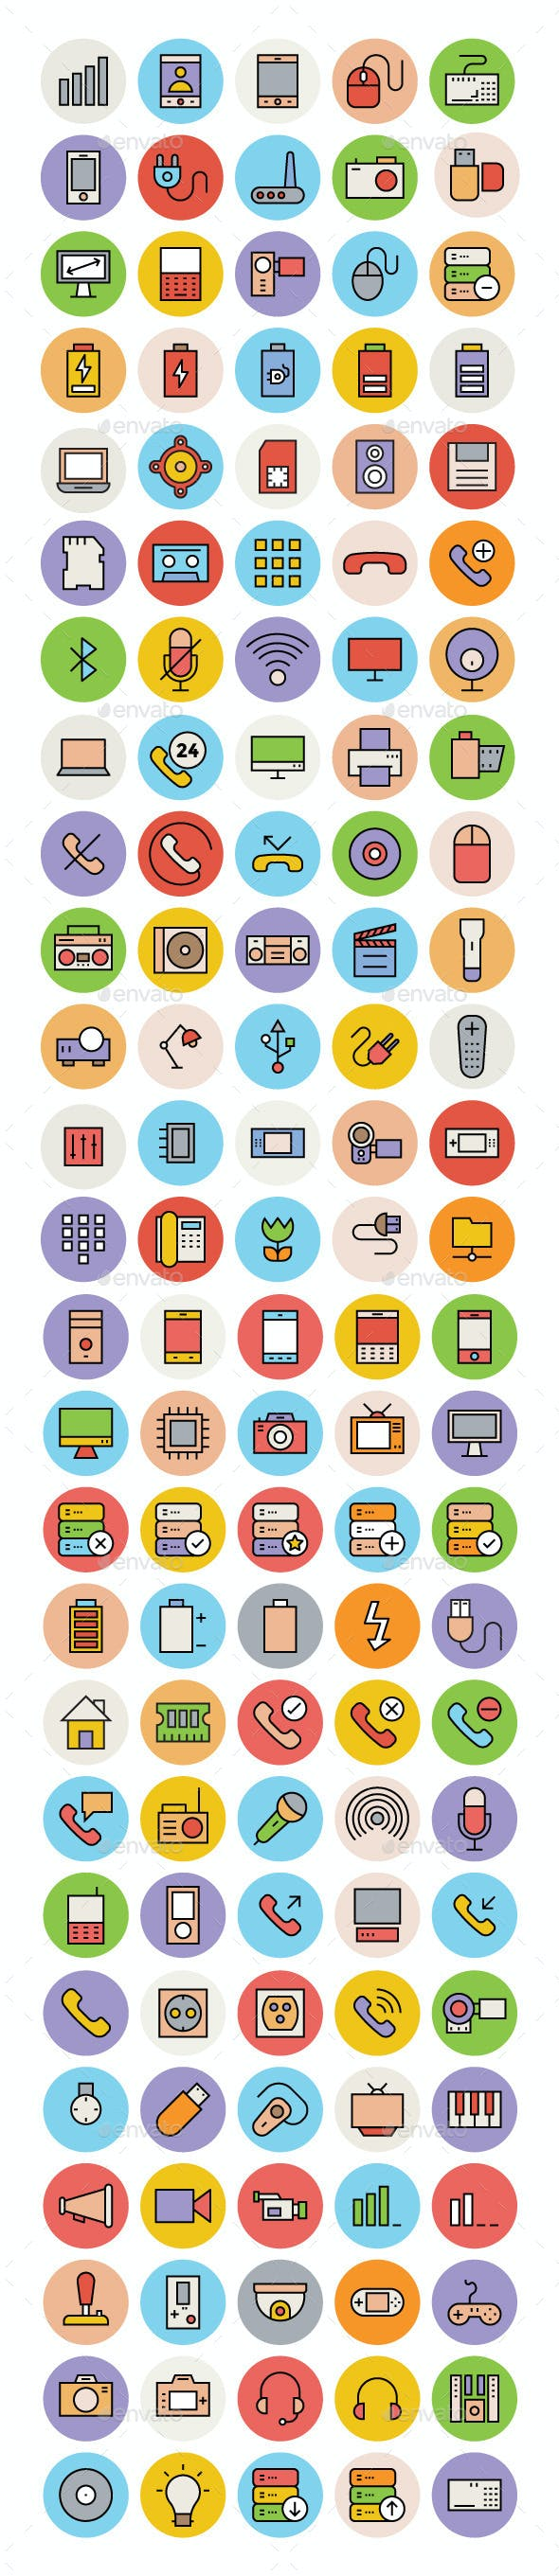 125+ Hardware and Devices Vector Icons